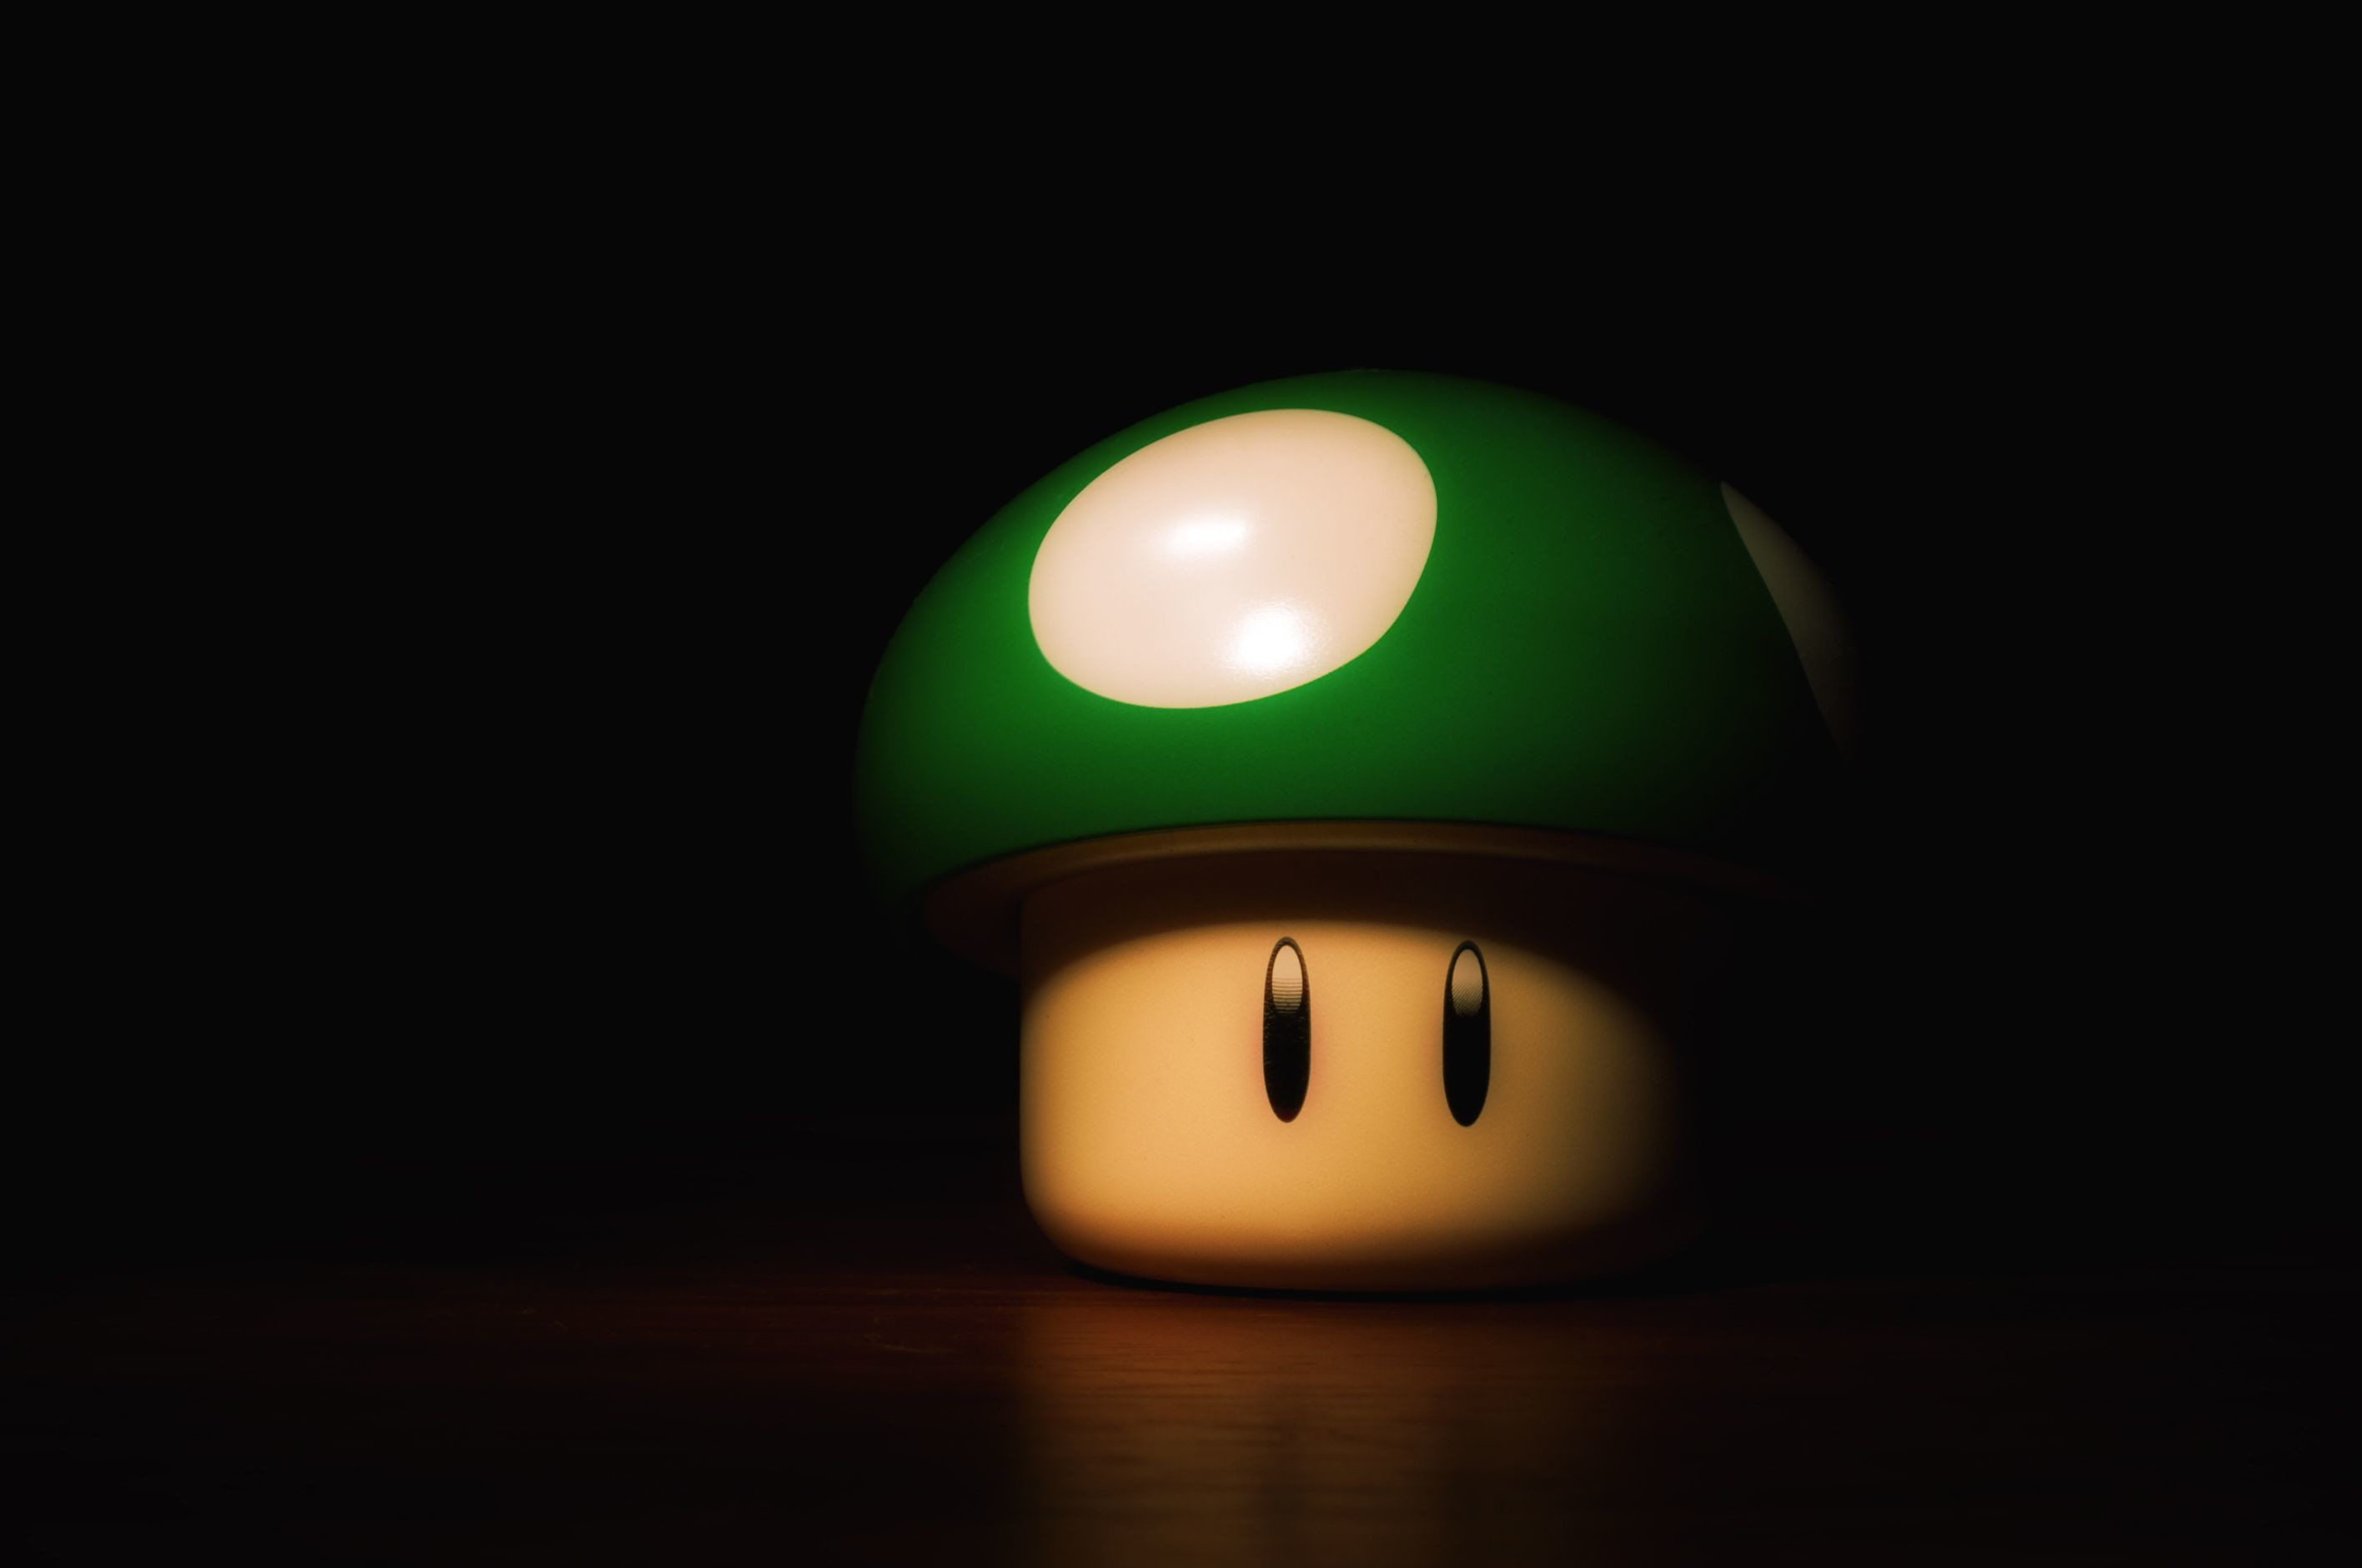 =Super Mario wallpapers for iPhone